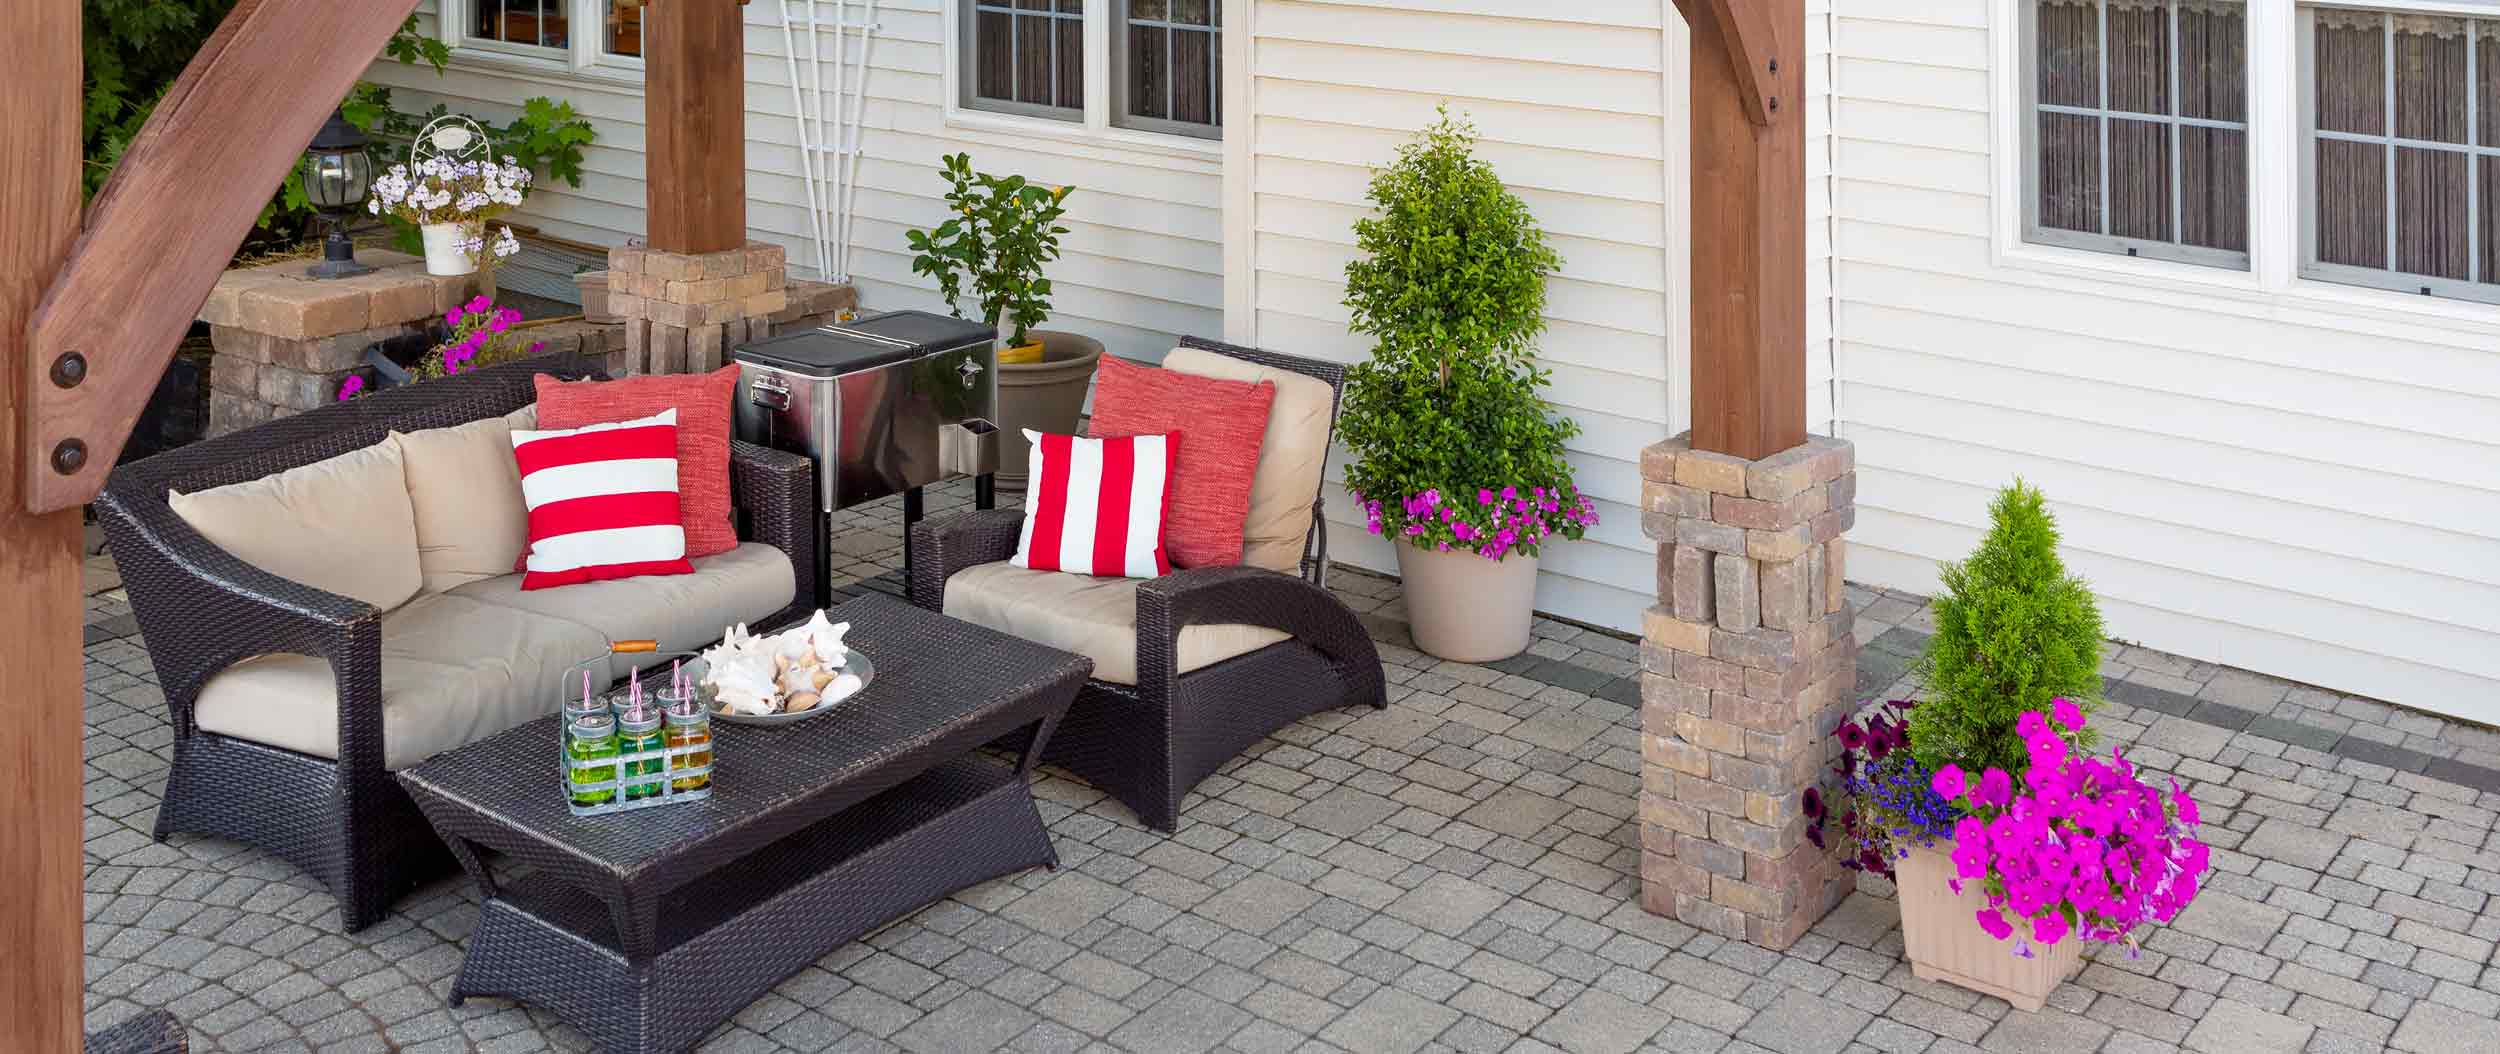 Paver patio with pergola by Finer Lawn & Landscaping